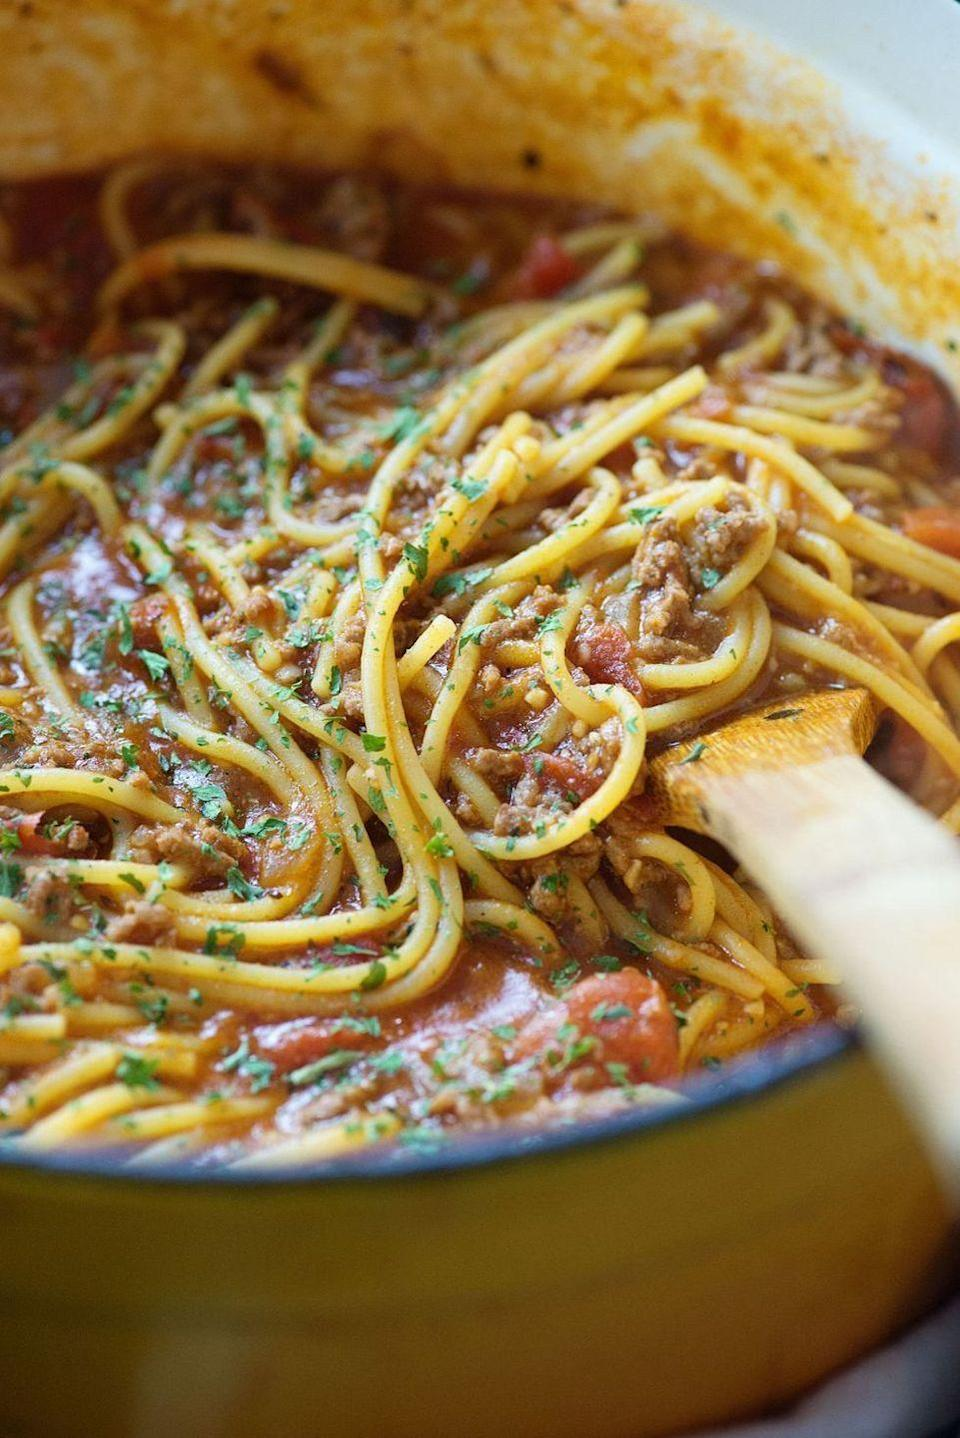 "<p>The less dishes to wash, the better.</p><p>Get the <a href=""https://www.delish.com/uk/cooking/recipes/a32751555/one-pot-spaghetti-recipe/"" rel=""nofollow noopener"" target=""_blank"" data-ylk=""slk:One-Pot Spaghetti"" class=""link rapid-noclick-resp"">One-Pot Spaghetti</a> recipe.</p>"